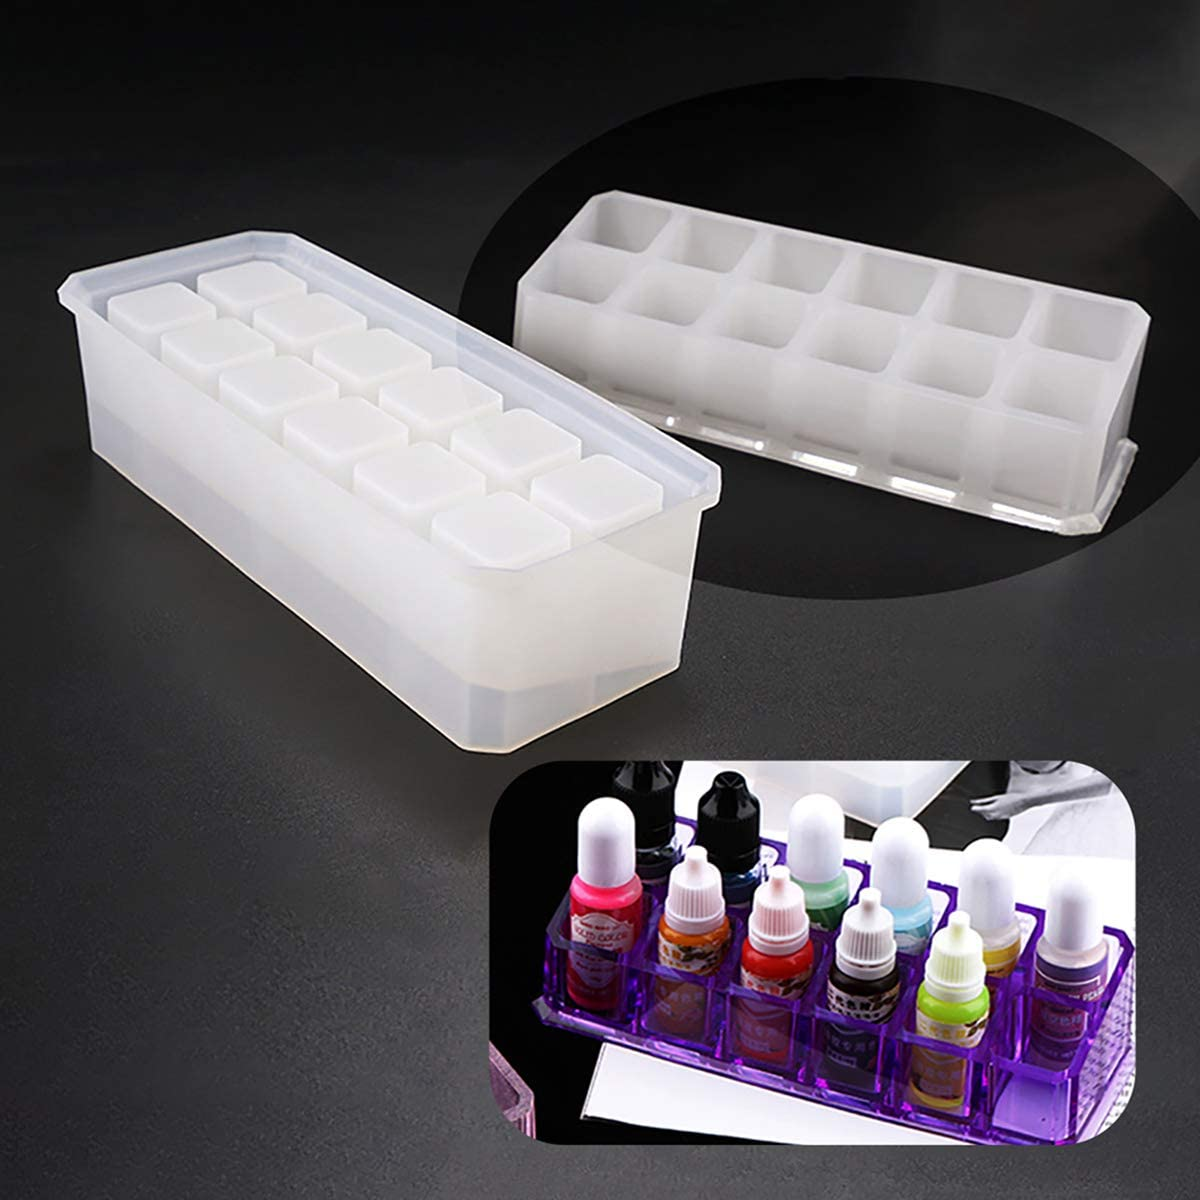 iSuperb Silicone Resin Model Epoxy Ma Models Sale price Jewelry Casting Time sale Box